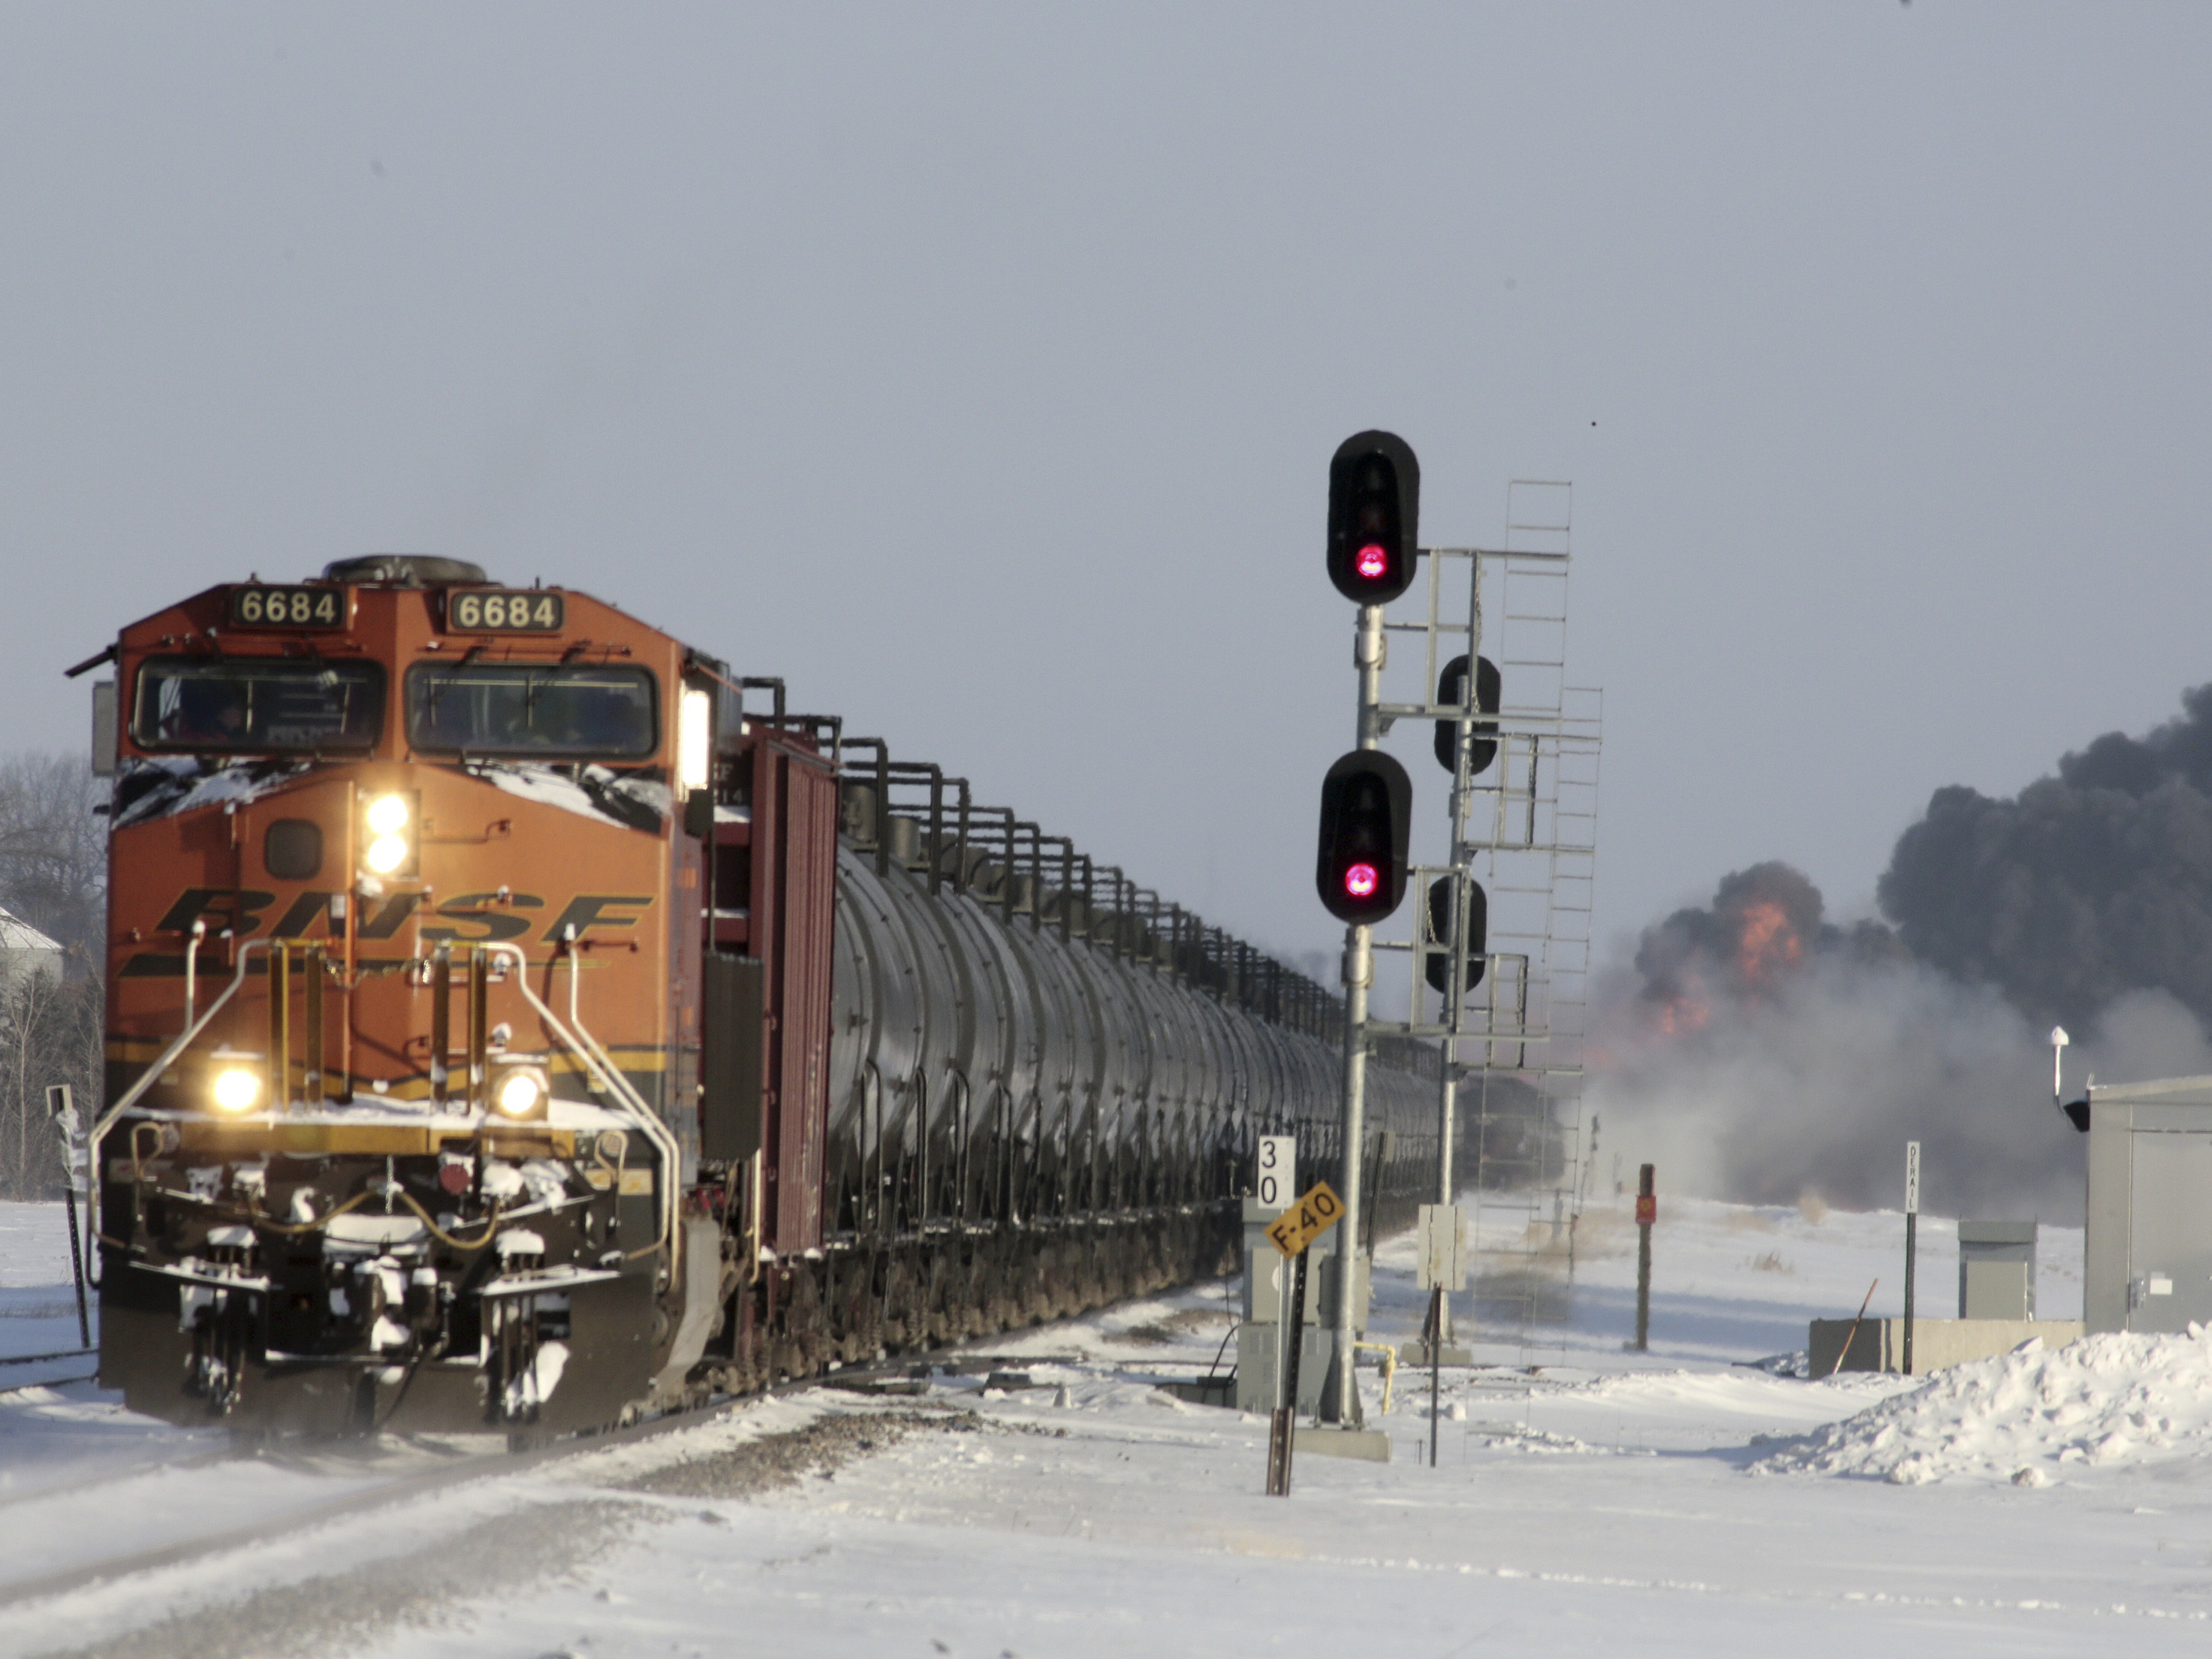 A plume of smoke rises from scene of a derailed train near Casselton, North Dakota, on Monday.